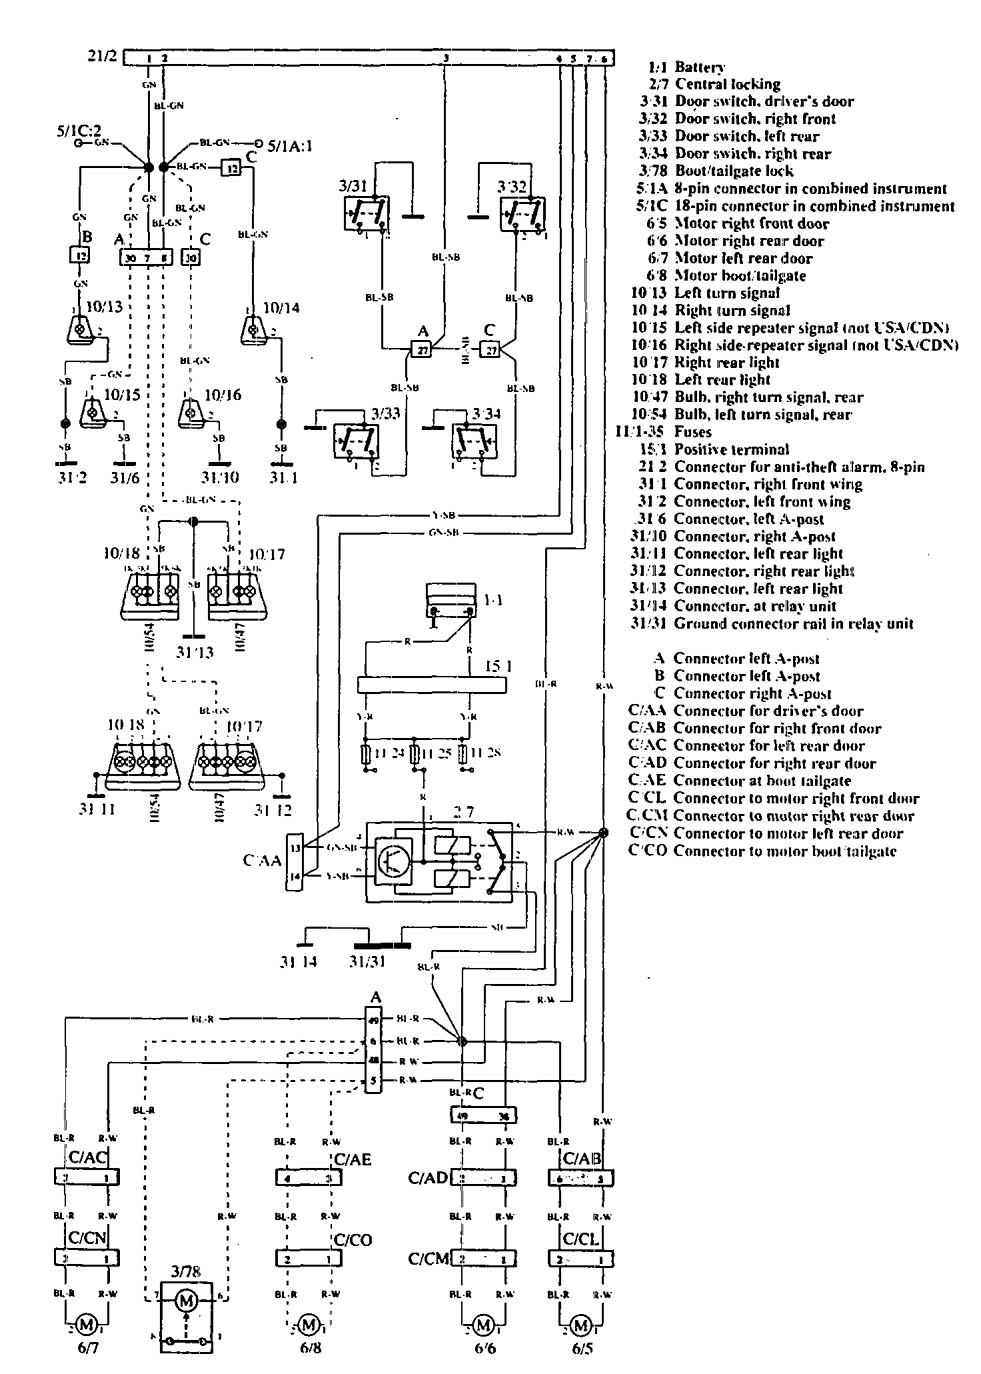 1996 volvo 960 b6304s engine diagram